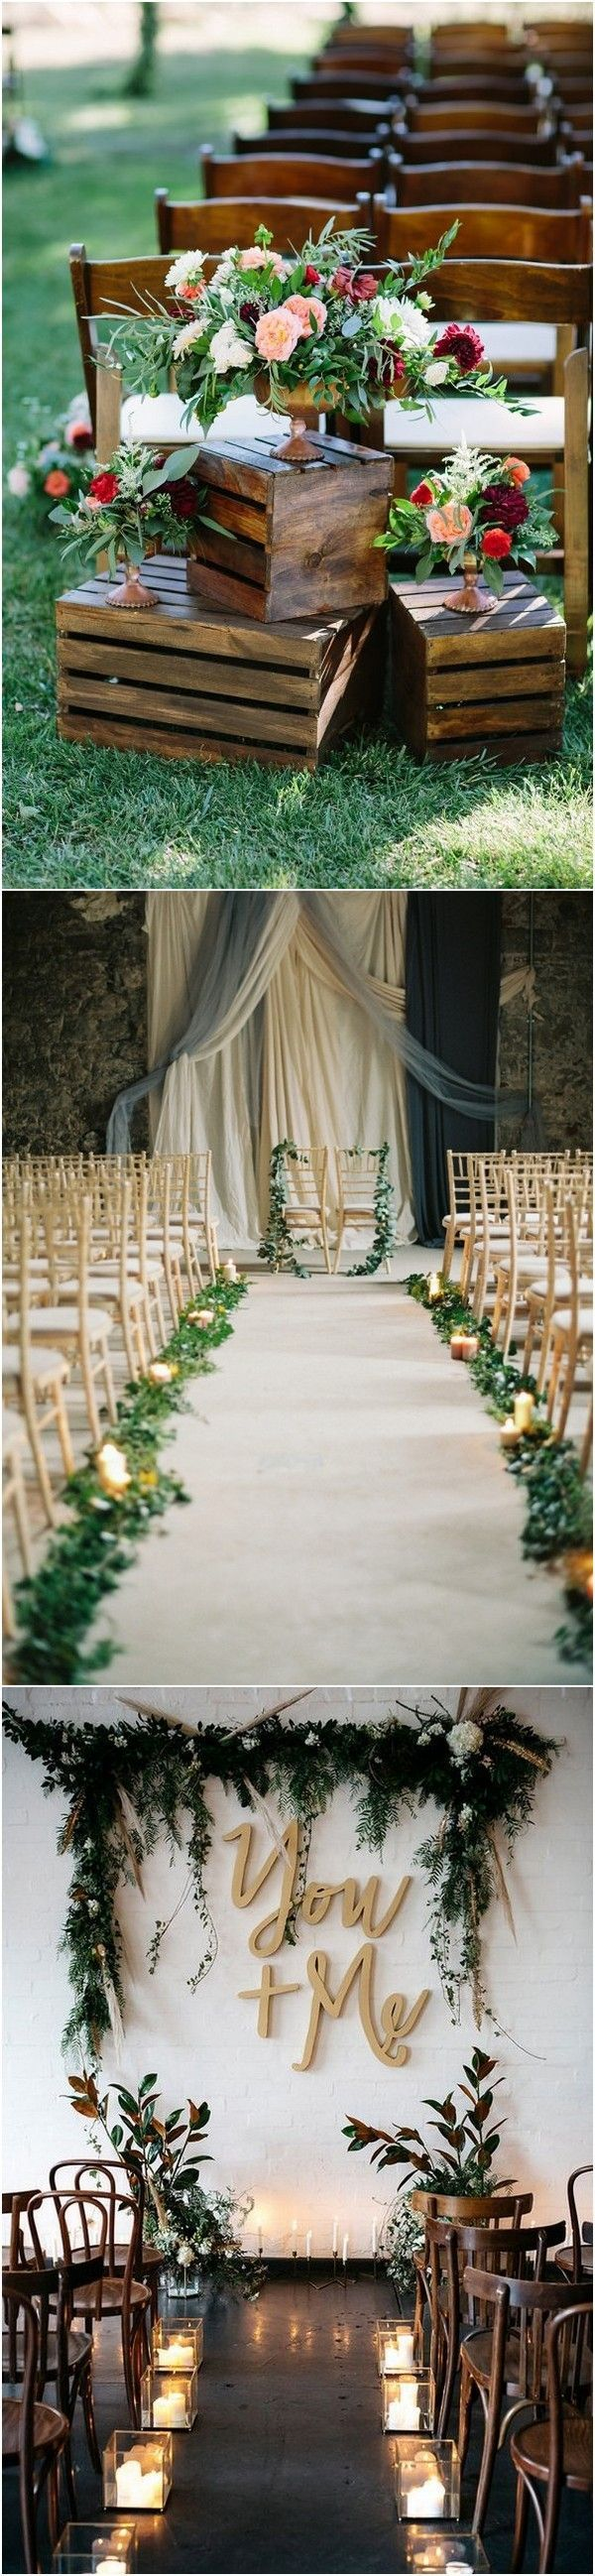 Wedding decorations ideas at home  chic rustic wedding ceremony decoration ideas rusticdecor  DIY